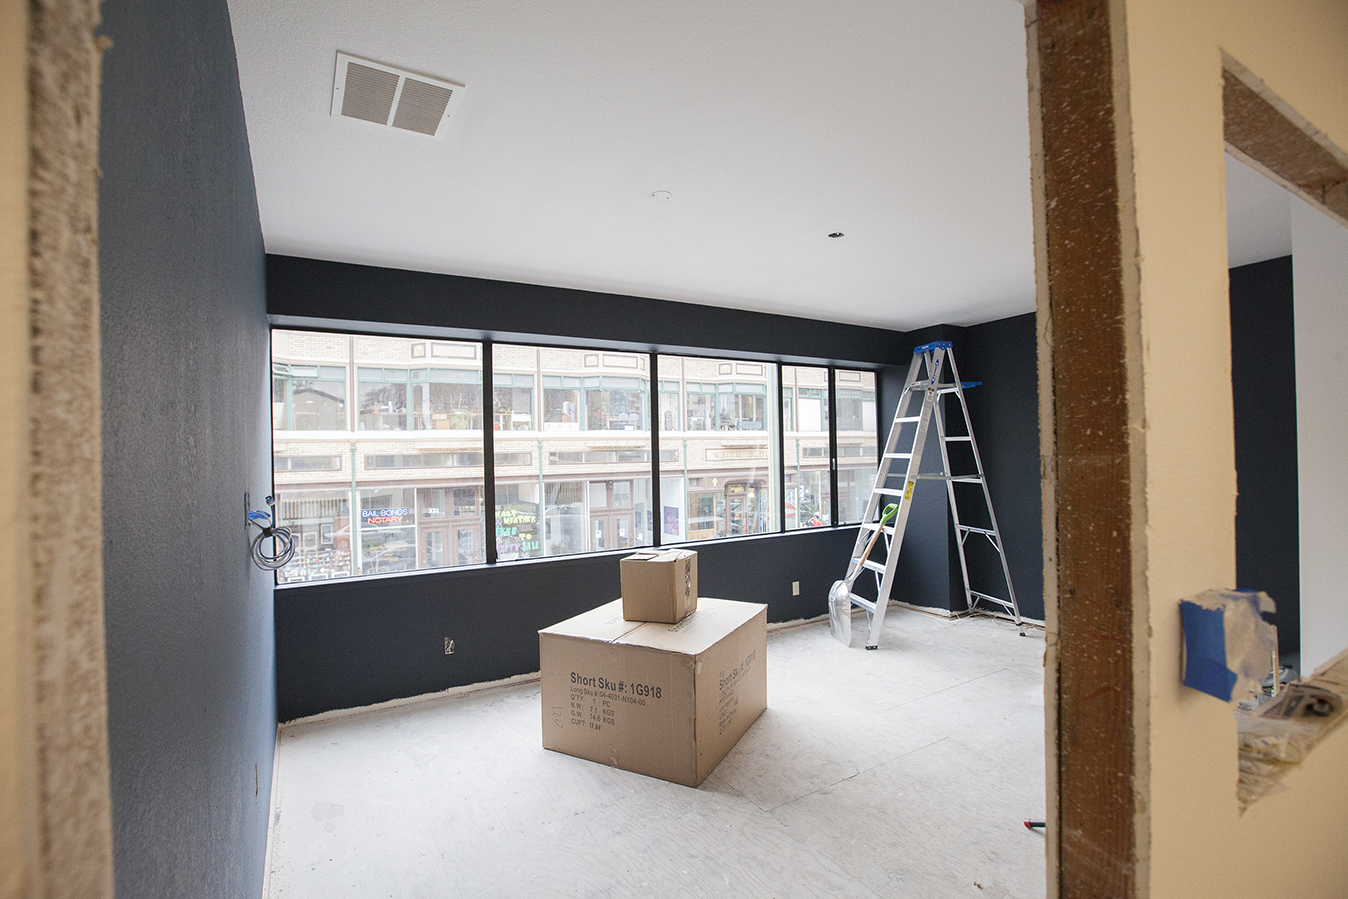 The interior offices are all getting a much needed face lift as well. A bit of paint goes a long way. Soon all the furniture and the rest of the finishes and fixtures will be in to completely transform this place.